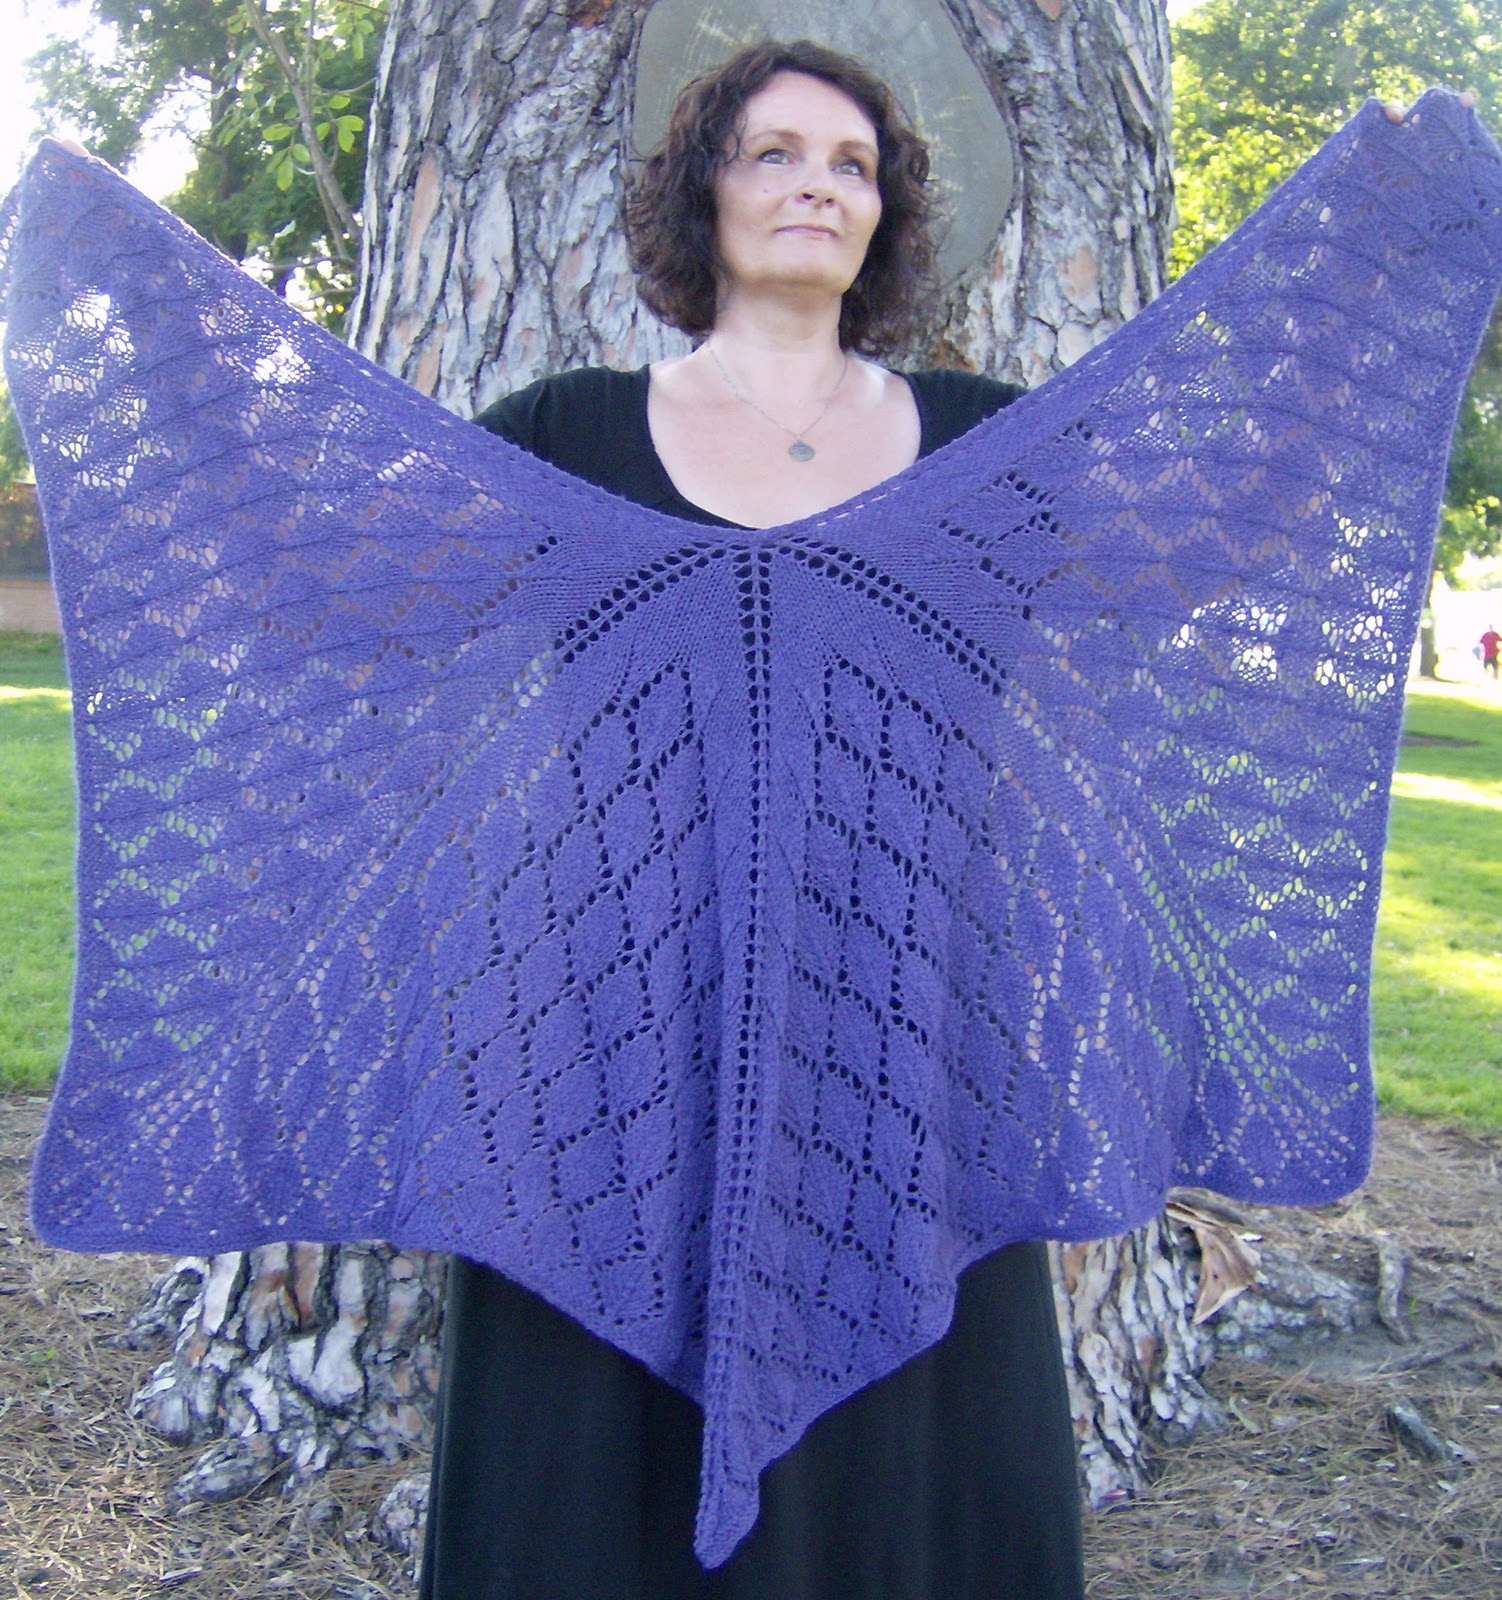 SunFunLiving Knits: Oak Leaves Shawl Pattern (FREE)